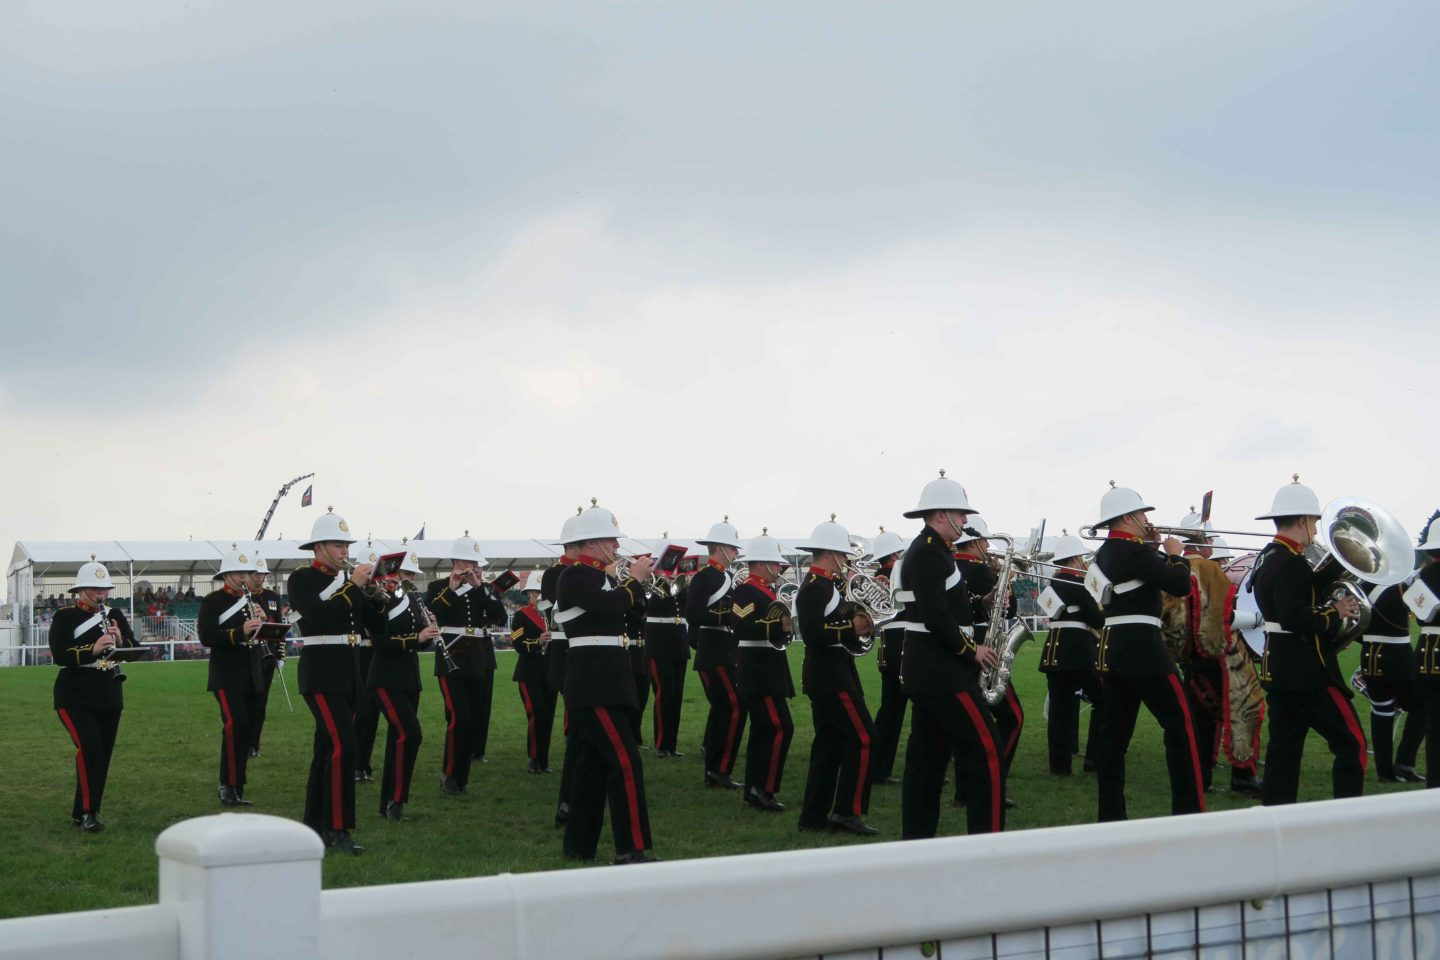 marching band in the cornwall show ground